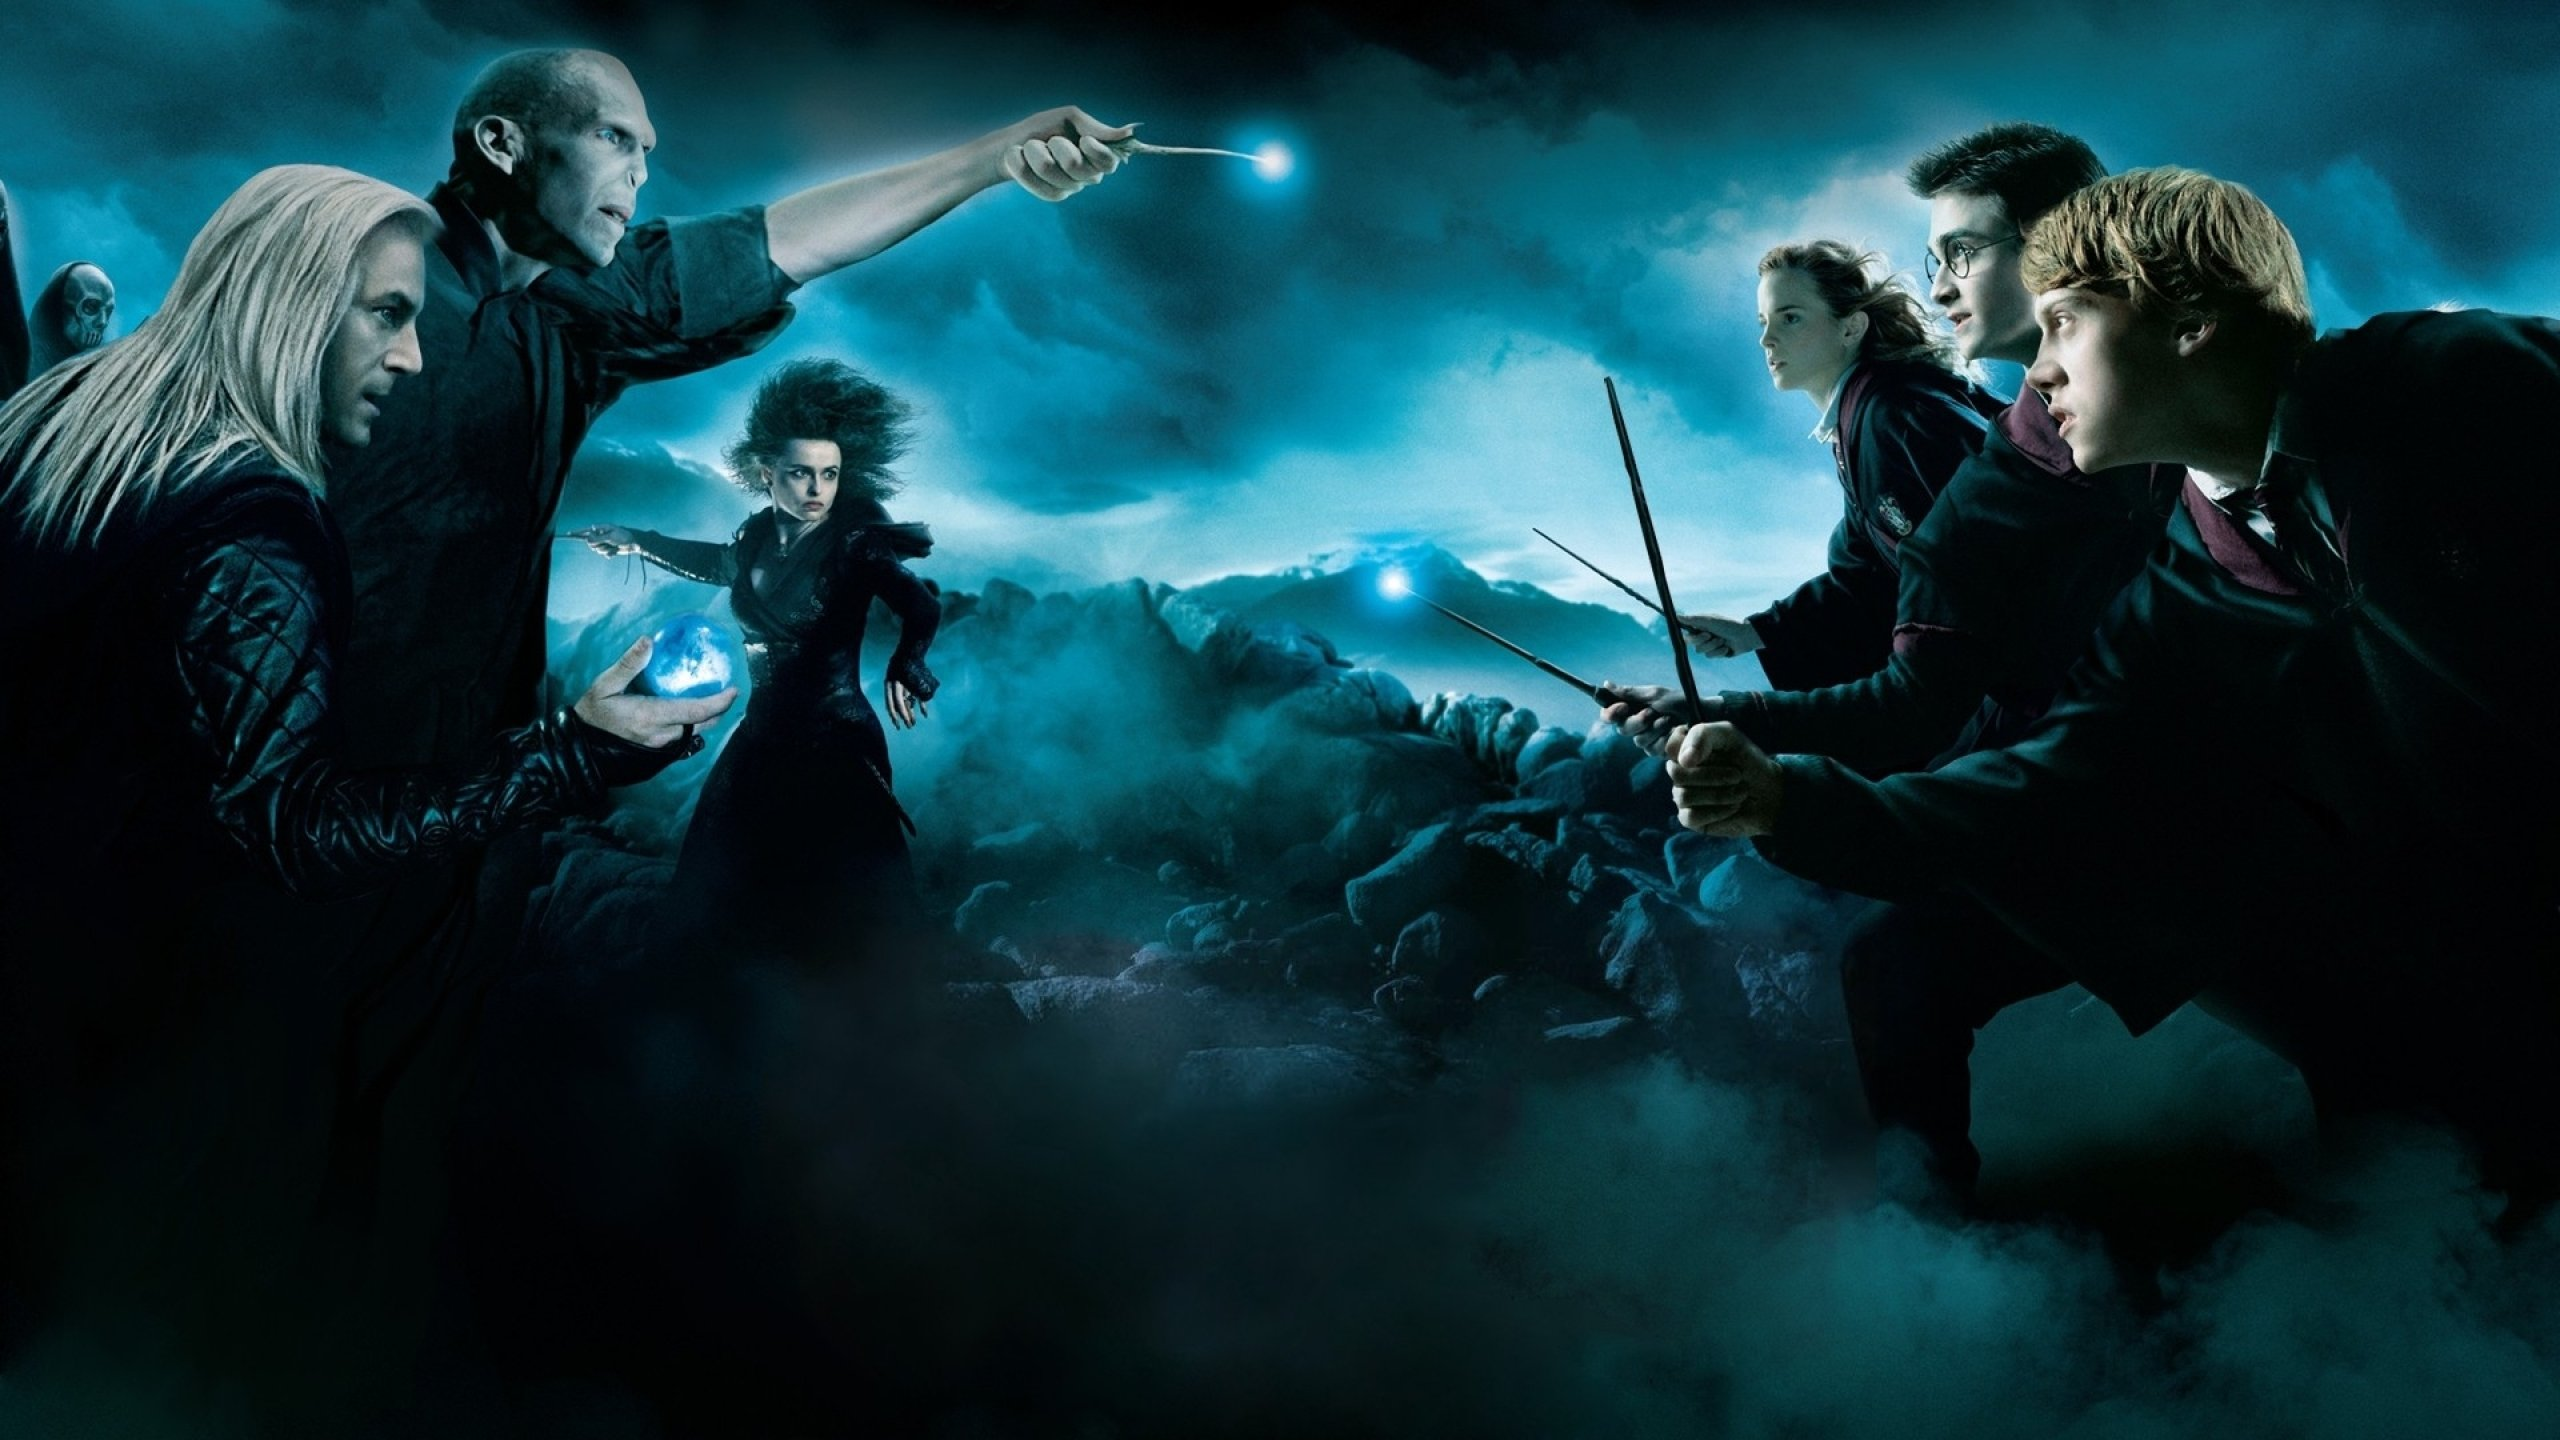 Free Download Harry Potter Wallpapers Hd Wallpapers